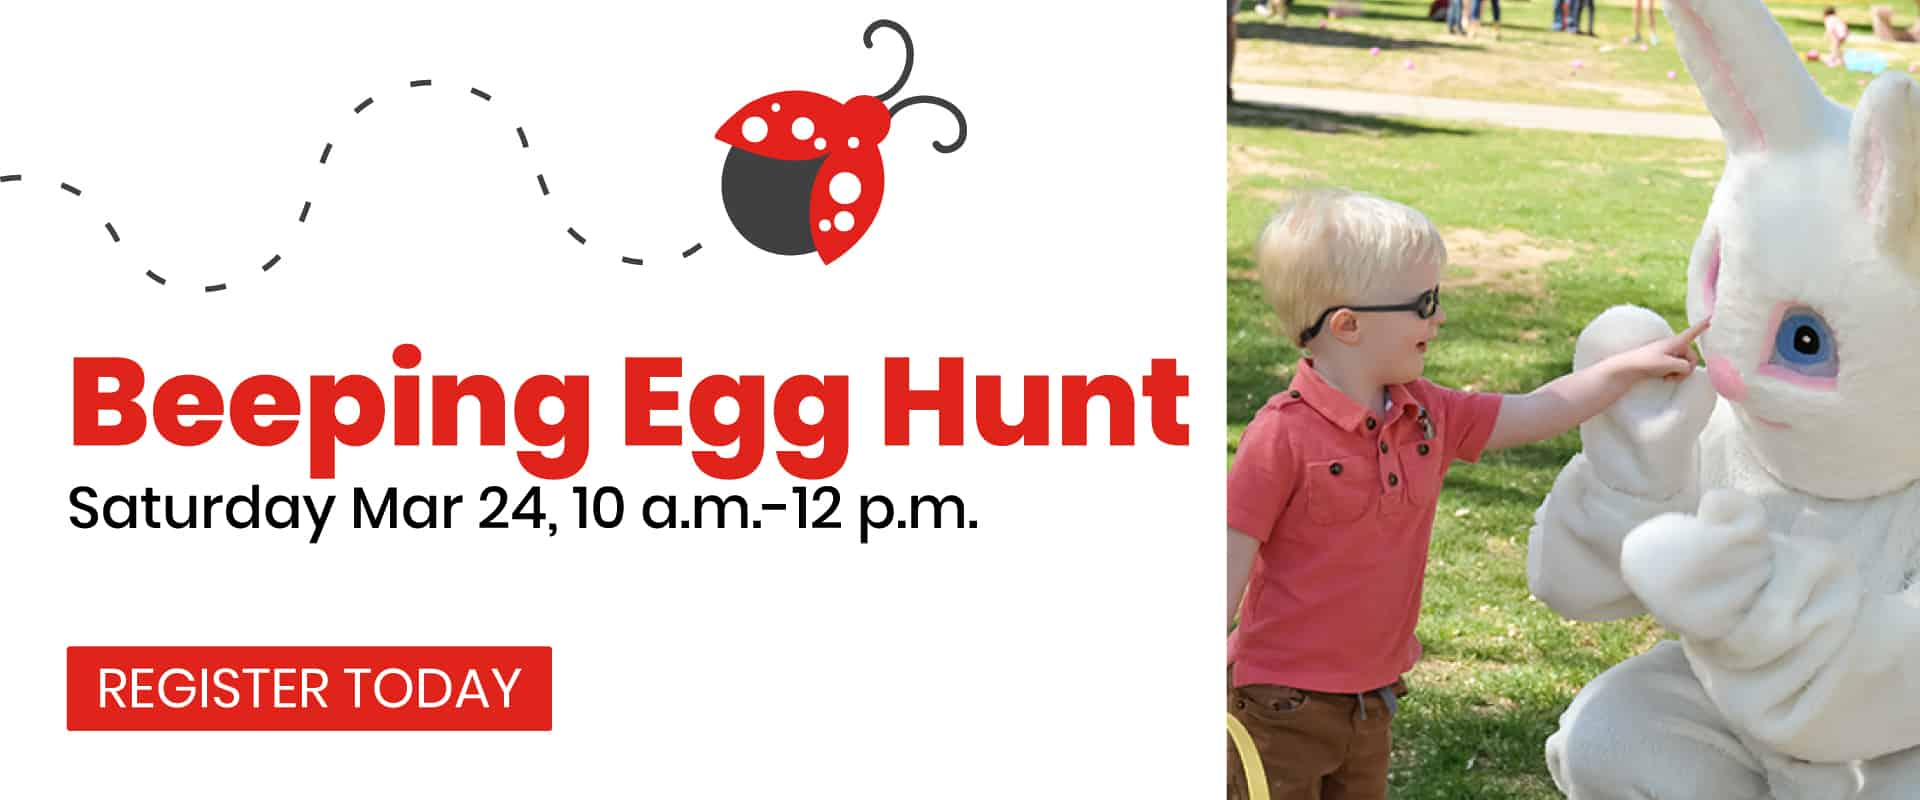 Beeping Egg Hunt